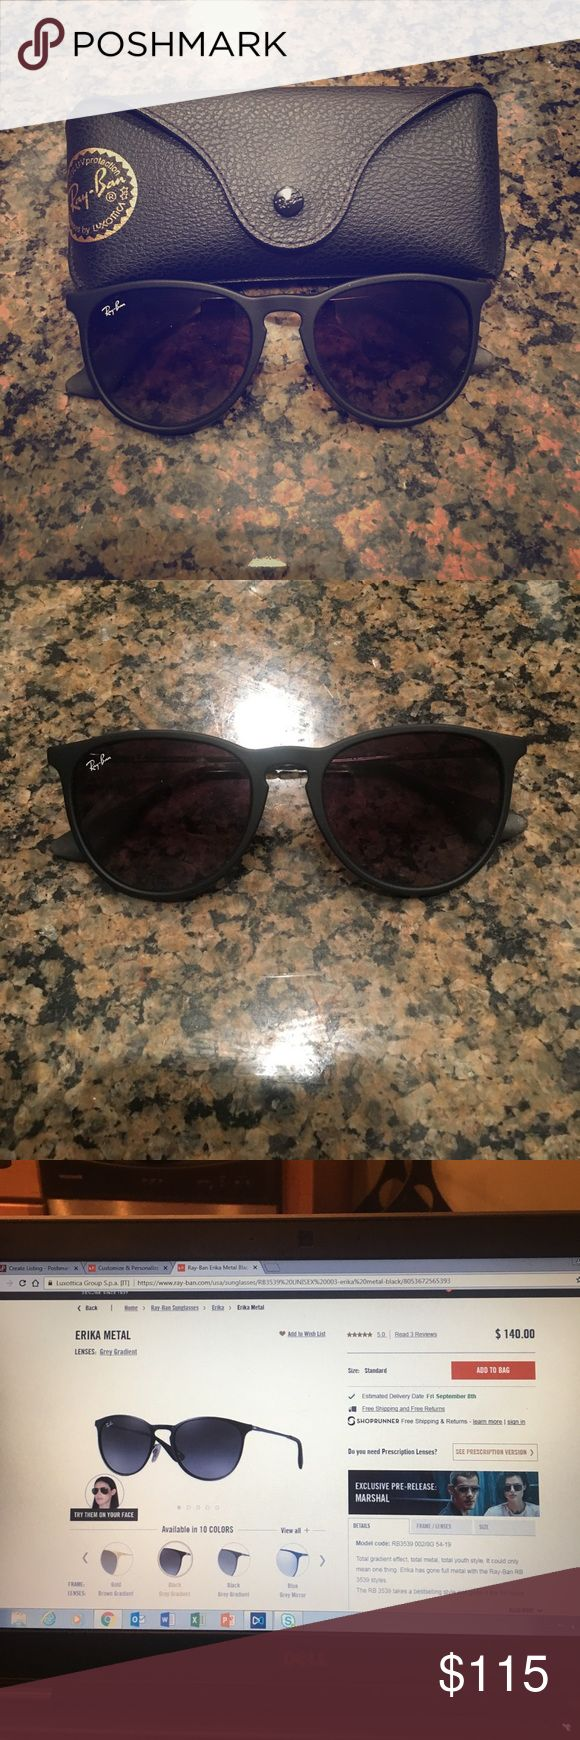 Ray-Ban Erika Metal Black Sunglasses Brand new without tags Ray-Ban sunglasses. Listed on website for $140 + tax ($150.50), asking $115 or best offer. Ray-Ban Accessories Sunglasses